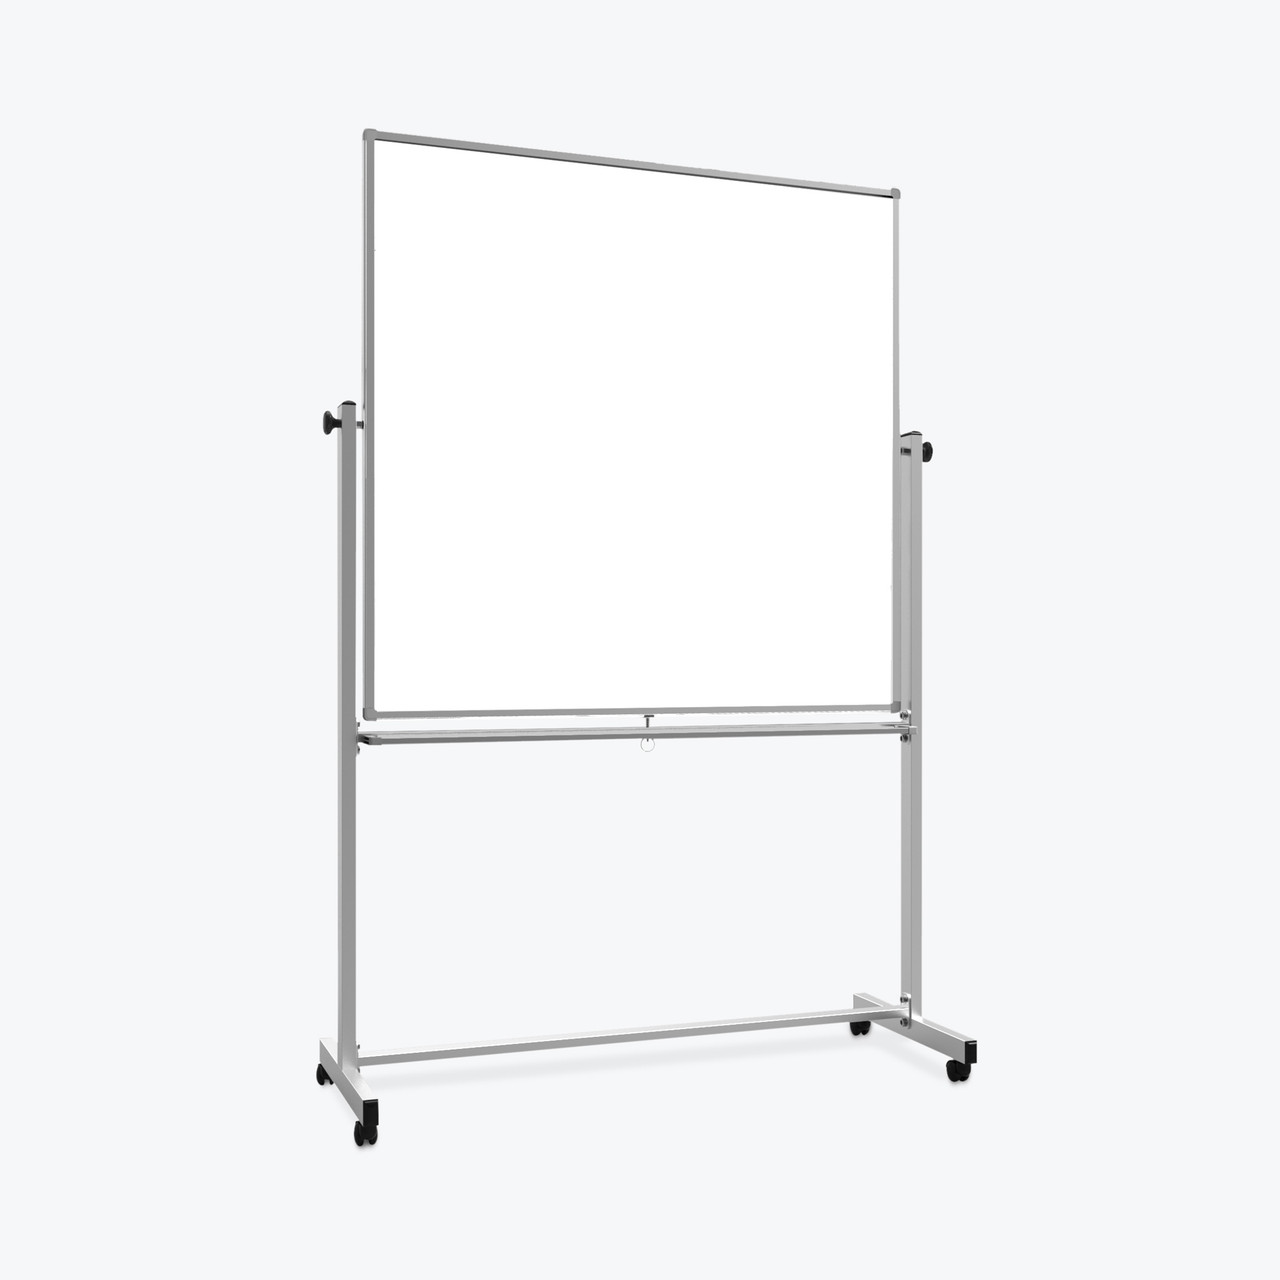 48 x 48 Double-Sided Magnetic Whiteboard MB4848WW